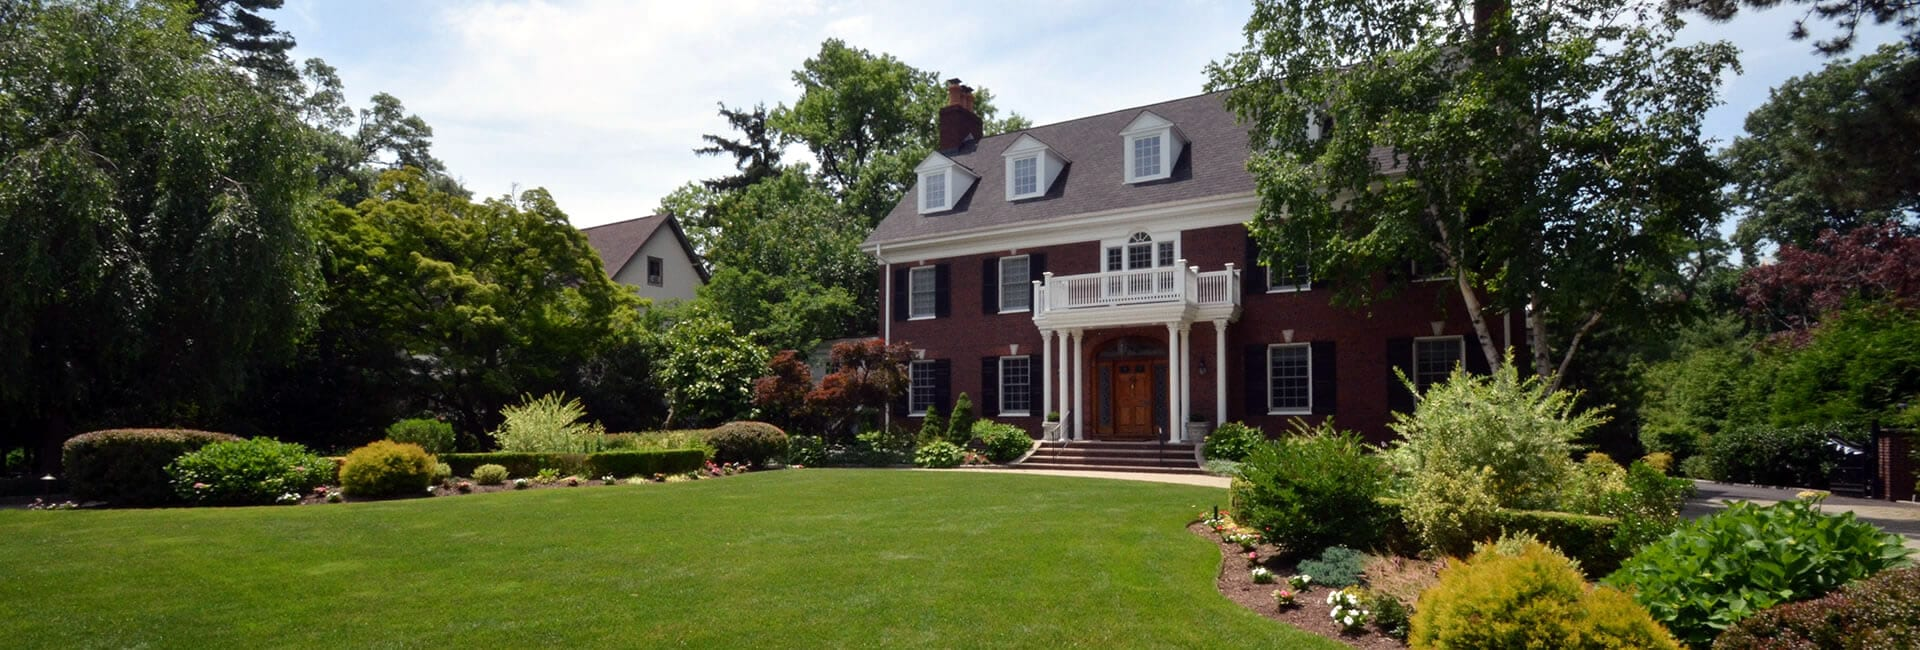 Brick Georgian Style Home with Nice Landscaping